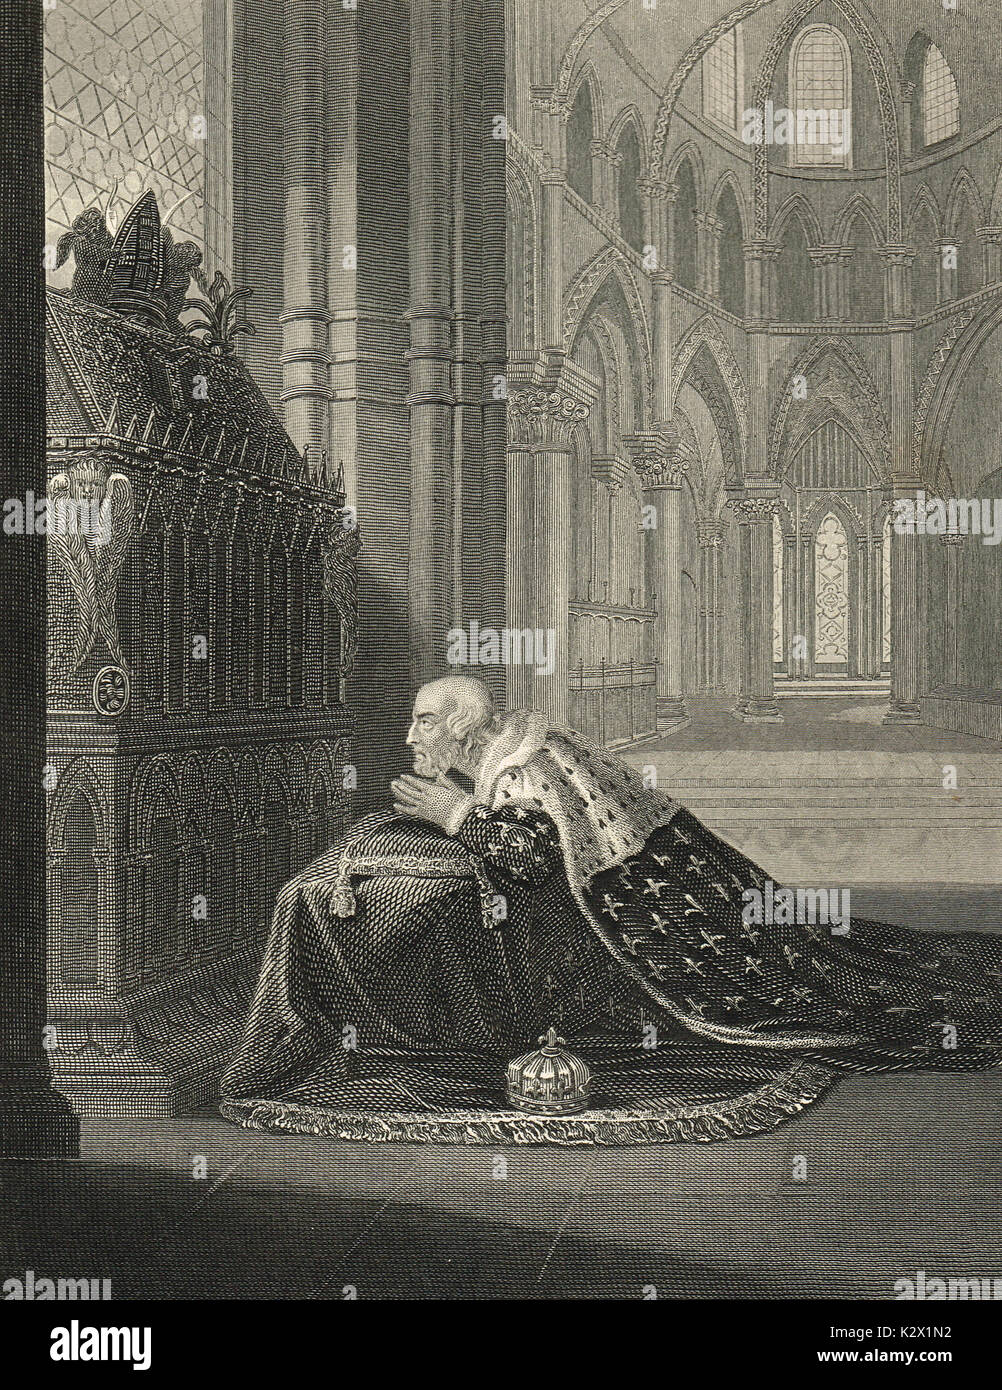 Louis VII, King of France before Becket's Tomb. Stock Photo